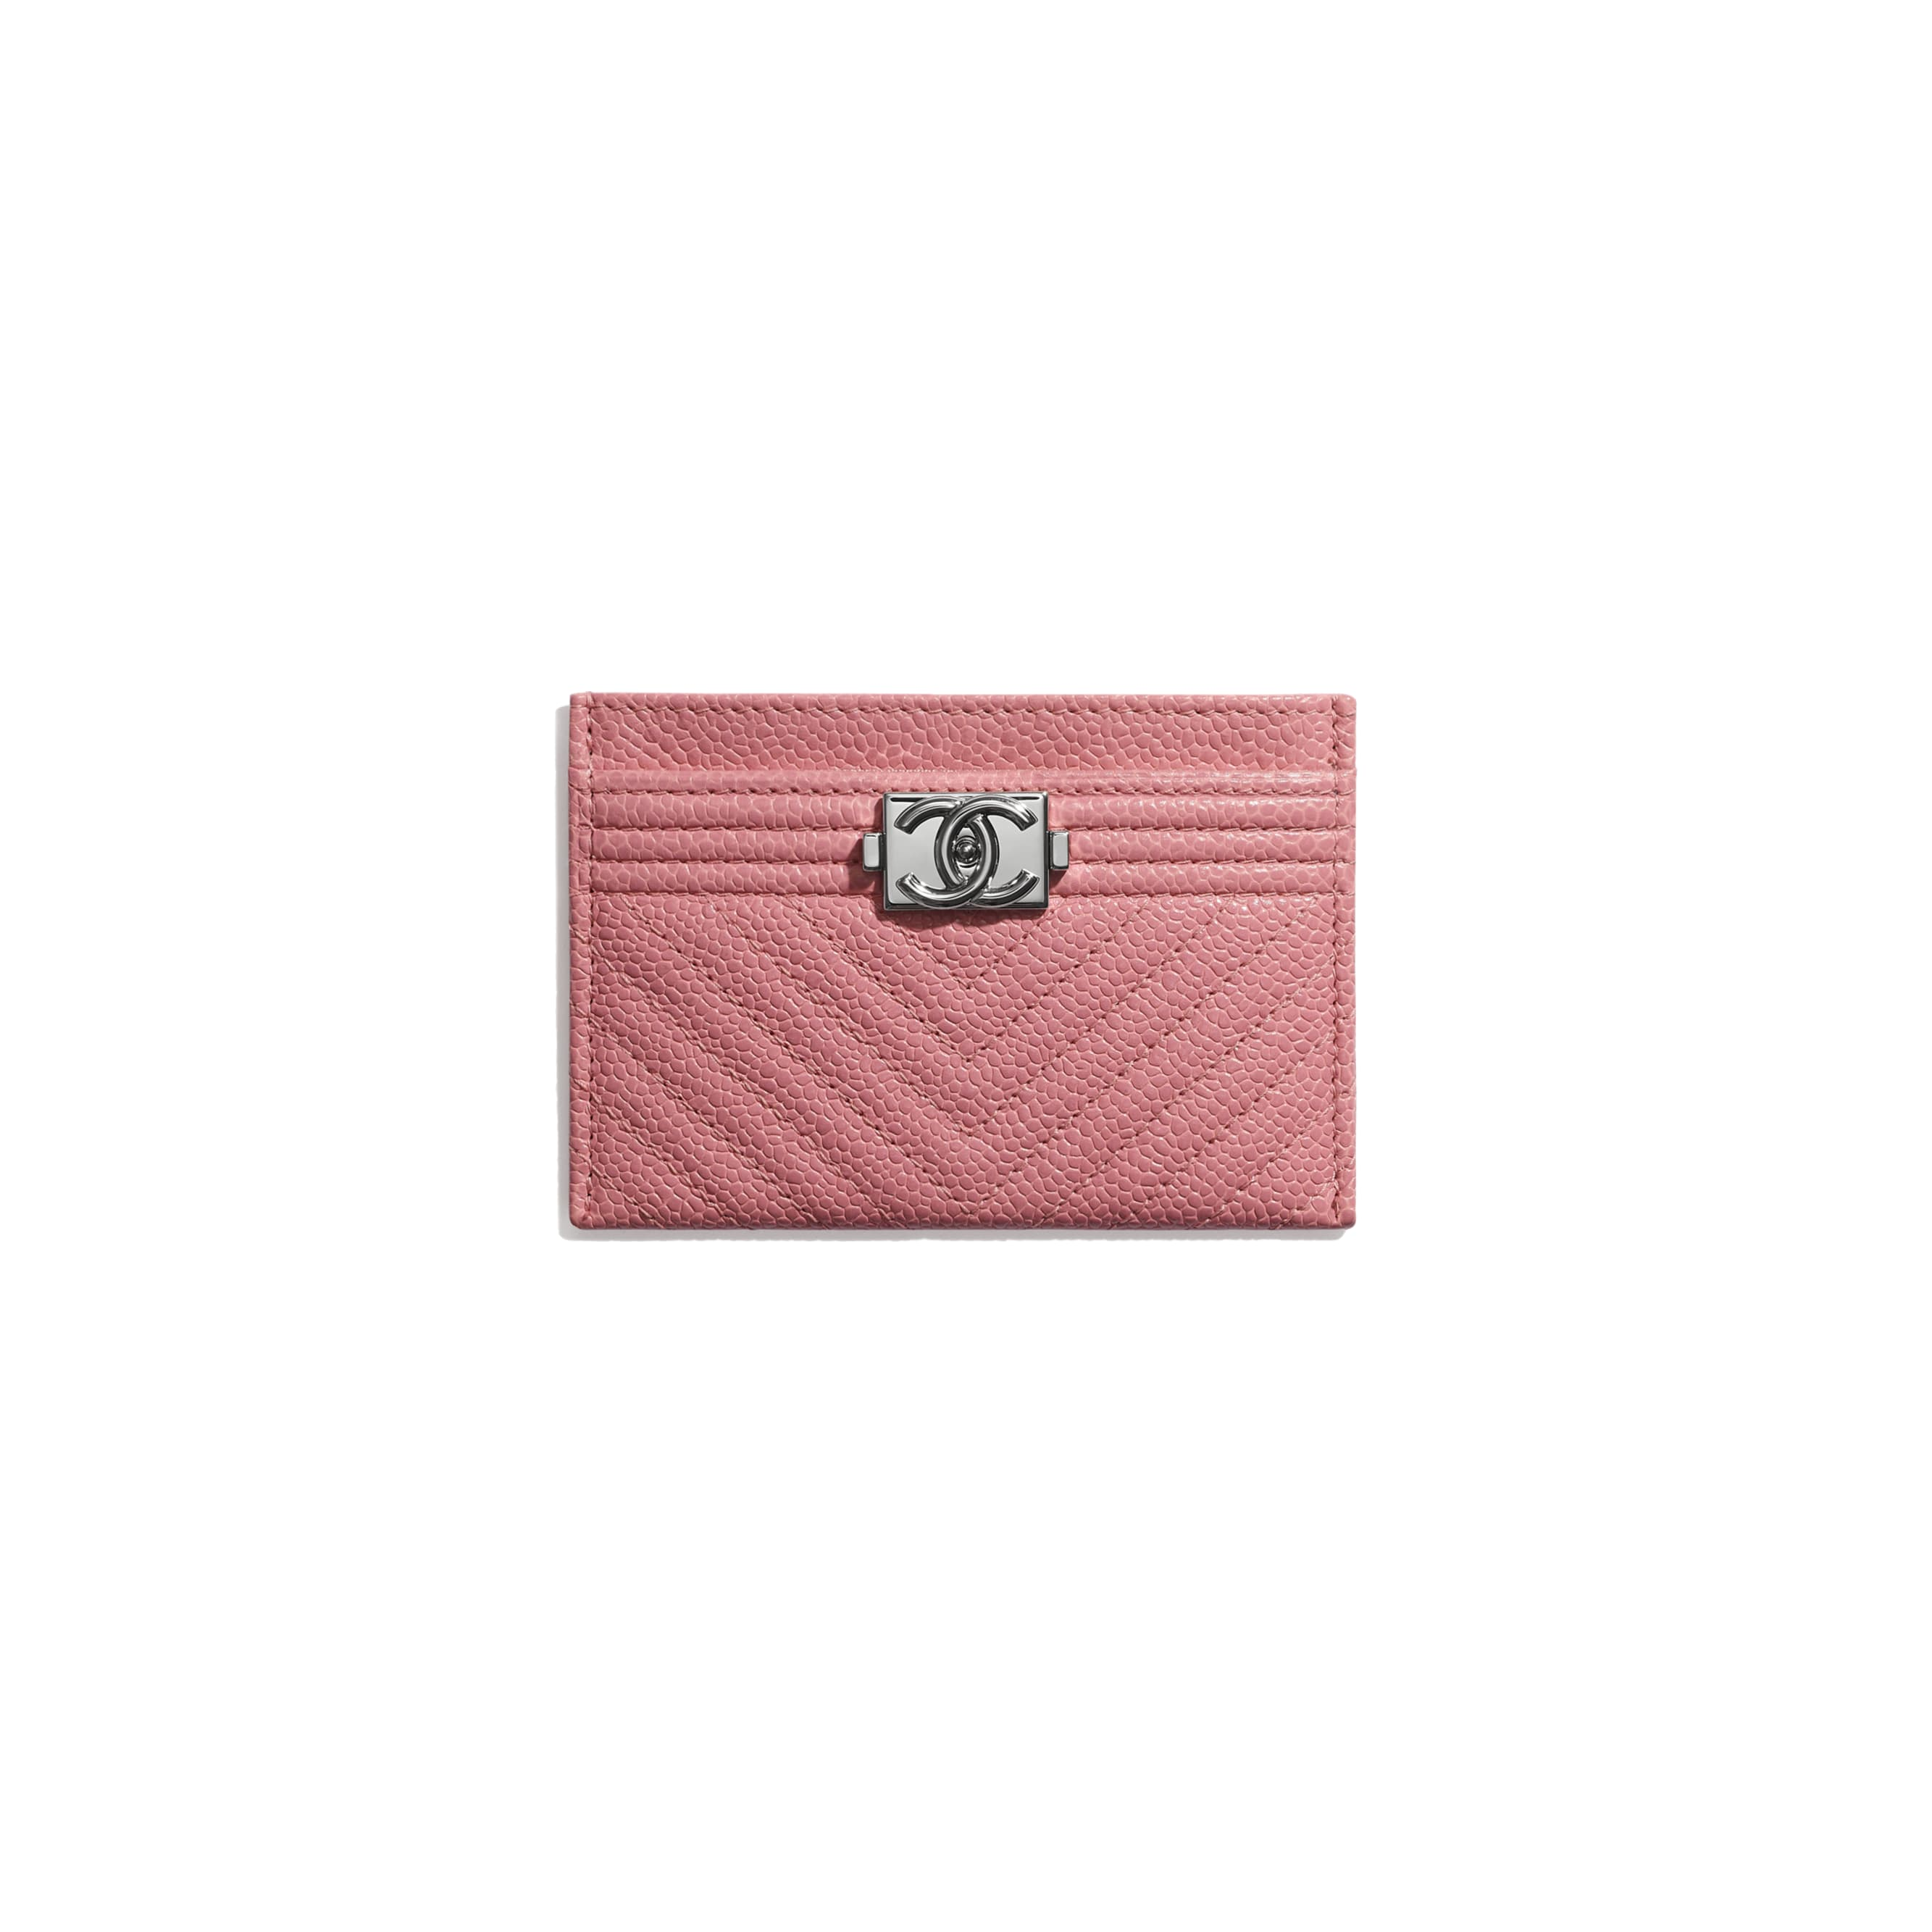 BOY CHANEL Card Holder - Pink - Shiny Grained Calfskin & Silver-Tone Metal - CHANEL - Default view - see standard sized version